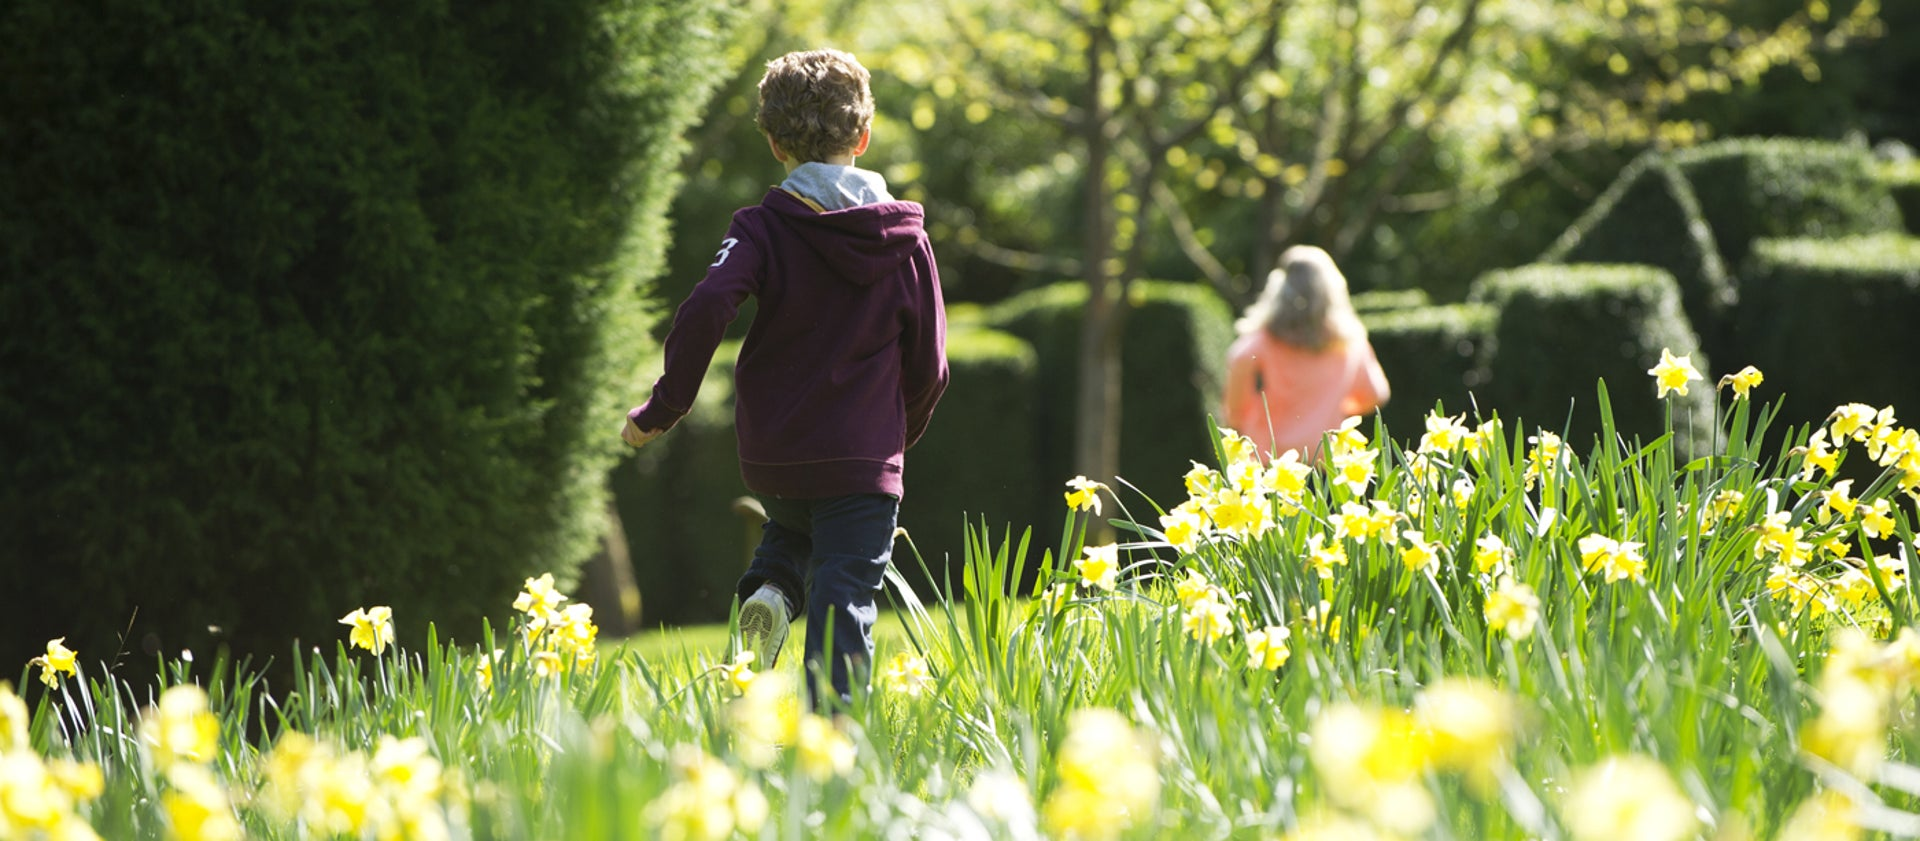 Places to see daffodil gardens & fields   National Trust